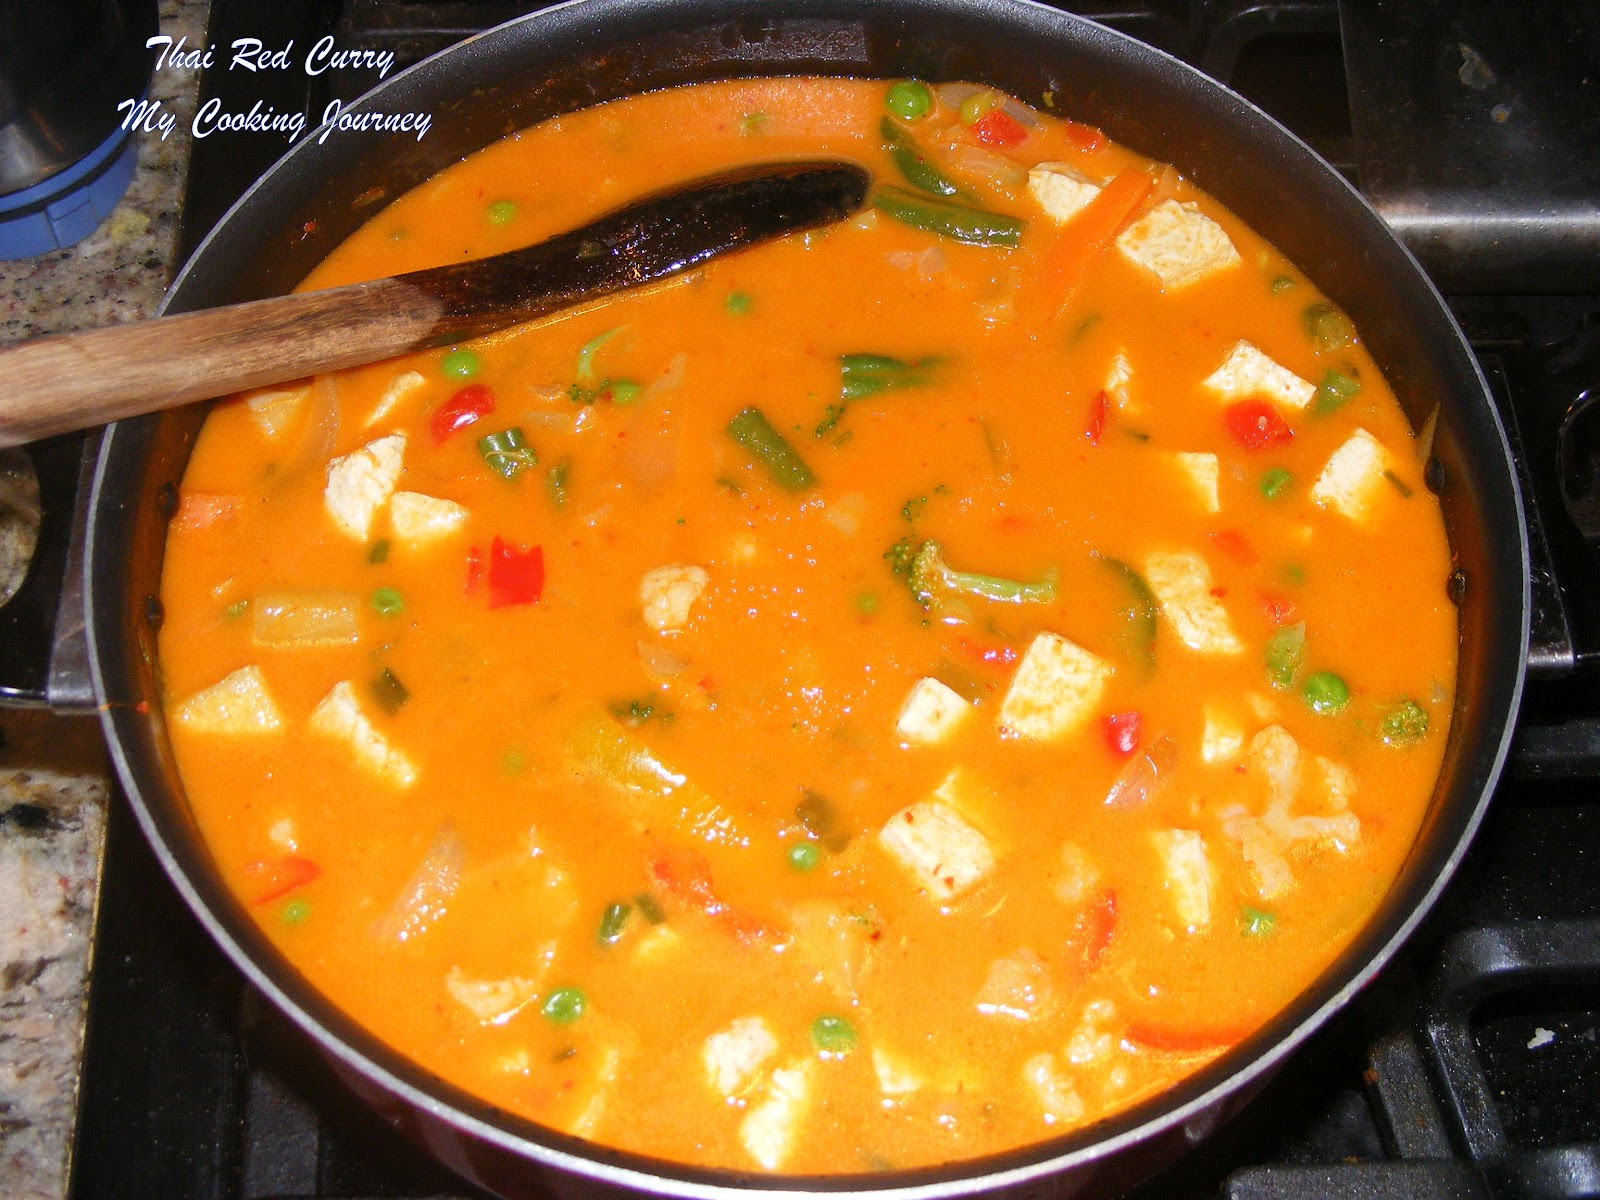 My Cooking Journey: Thai Vegetable and Tofu red Curry (Vegetarian)